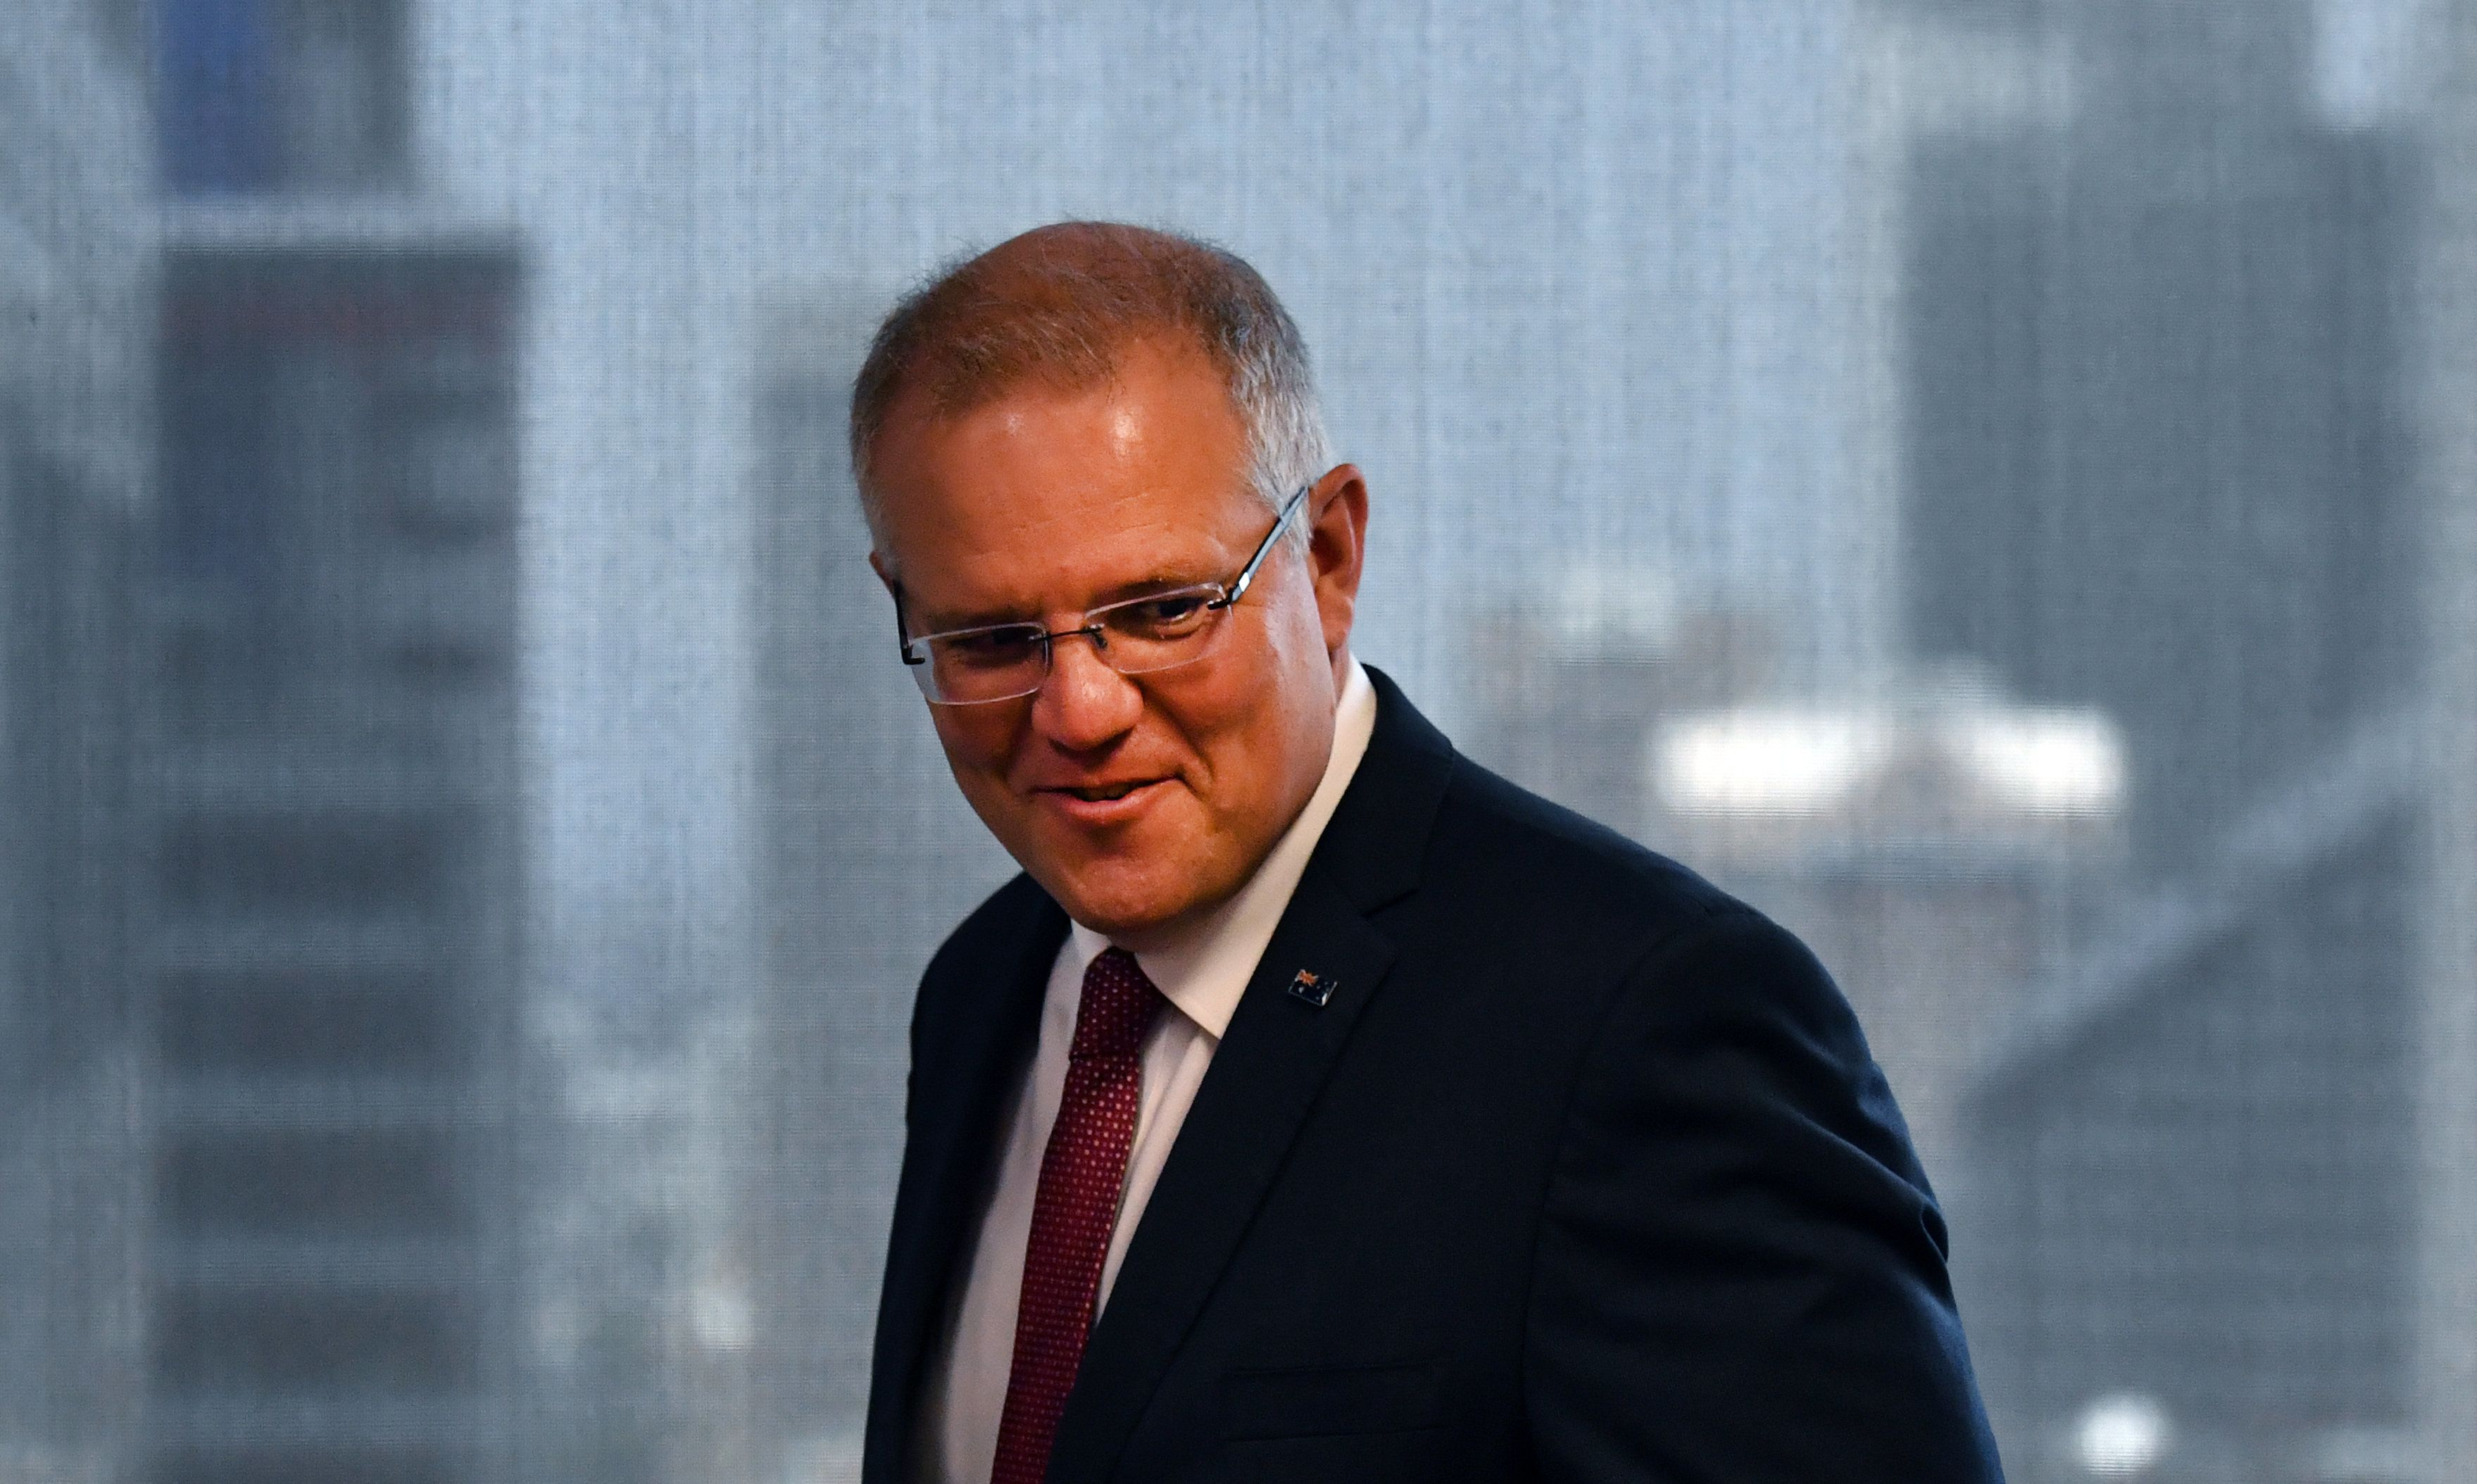 SYDNEY, AUSTRALIA - DECEMBER 15: Australian Prime Minister Scott Morrison arrives to speak at the Australian Institute on December 15, 2018 in Sydney, Australia. Morrison announced that the Australian government will recognize West Jerusalem as the capital and East Jerusalem as the Capital as Palestine after a settlement has been reached on a two-state solution but will not move the Australian Embassy from Tel Aviv until that time. (Photo by Mick Tsikas-Pool/Getty Images)